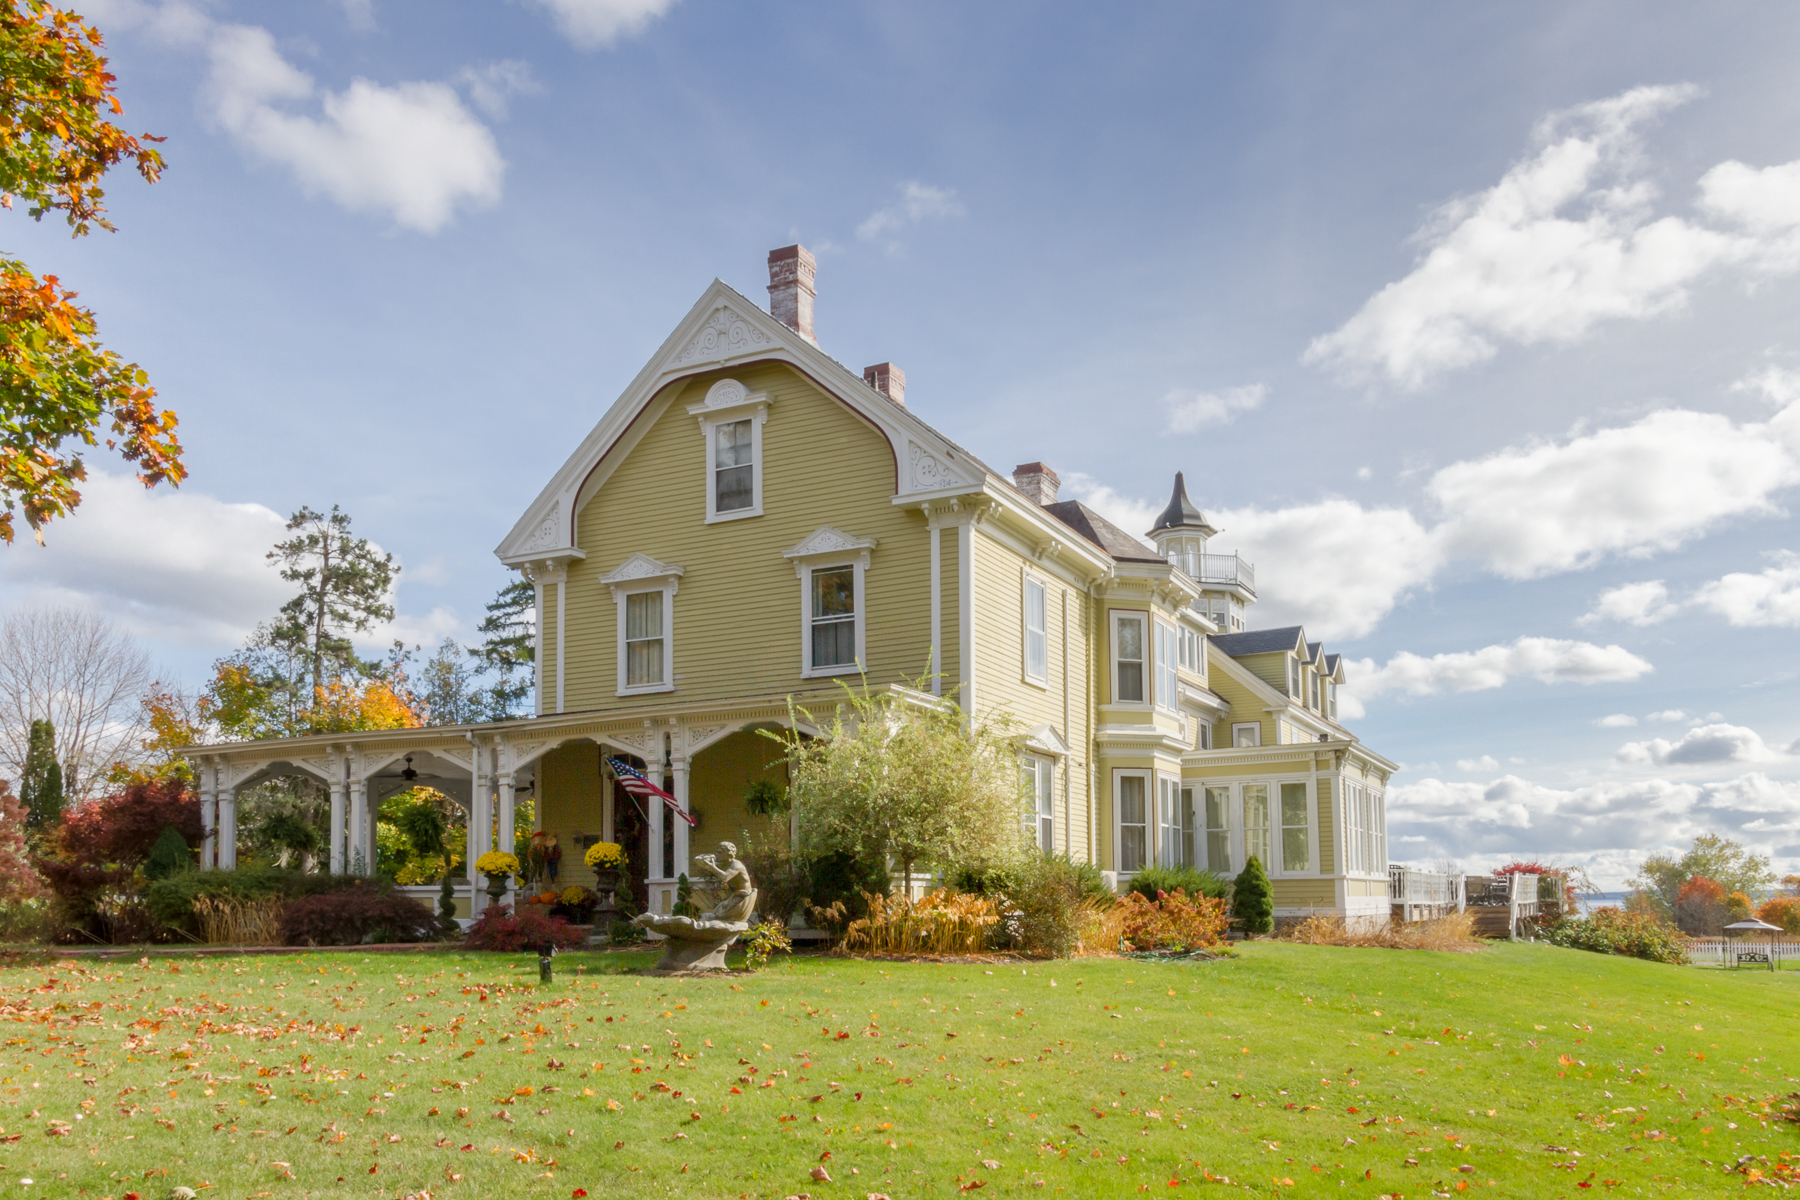 Commercial for Sale at Captain A.V. Nichols Inn 127 Main Steet Searsport, Maine 04974 United States